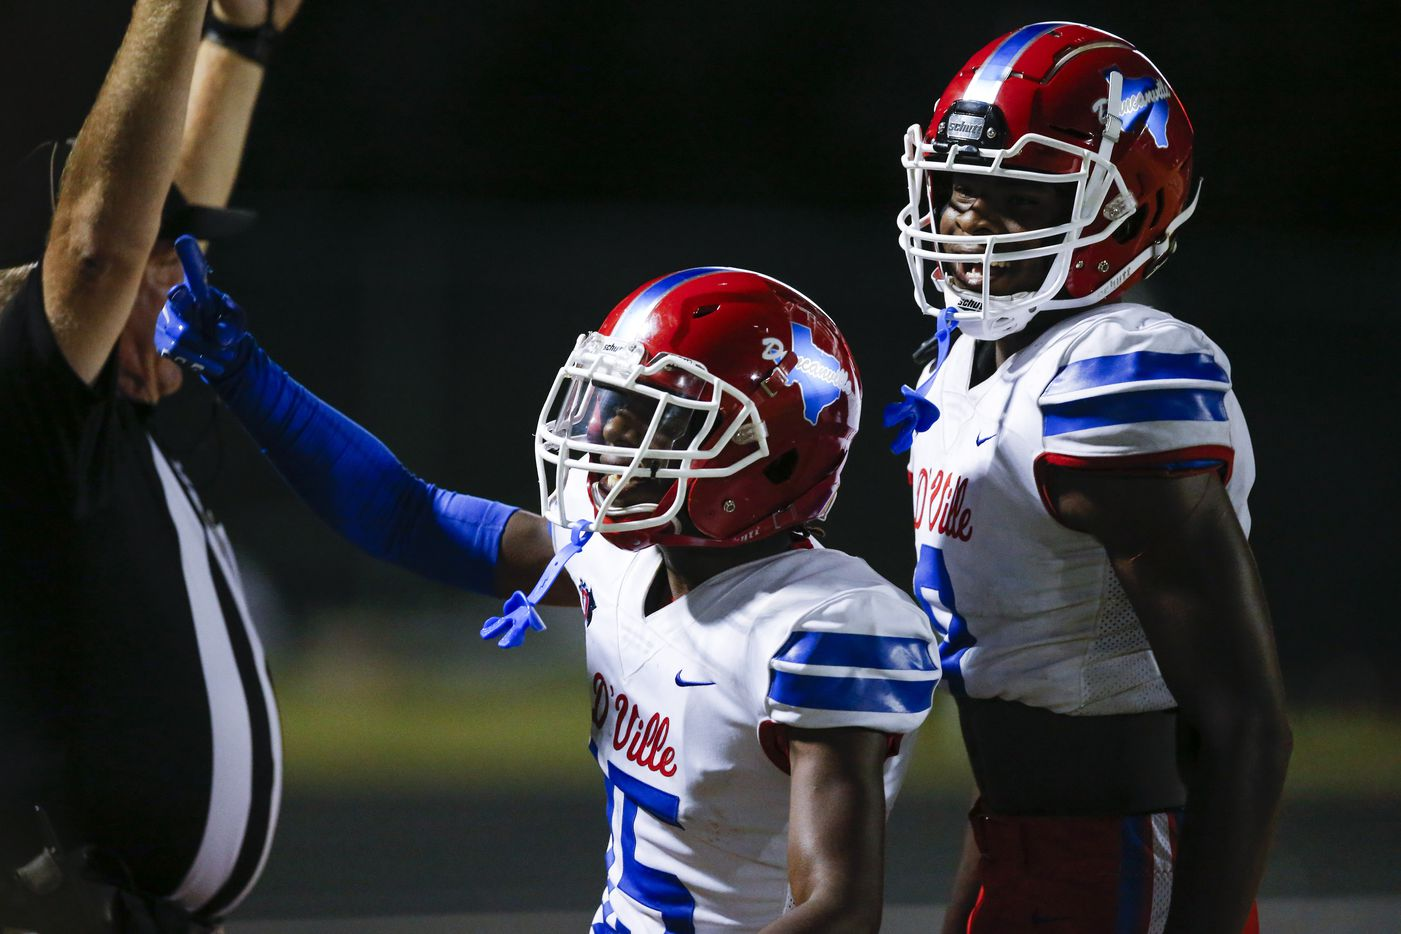 Duncanville junior defensive back Lamoderick Spencer, center, celebrates scoring a touchdown during the second half of a high school football game against DeSoto at DeSoto High School, Friday, September 17, 2021. Duncanville won 42-21. (Brandon Wade/Special Contributor)